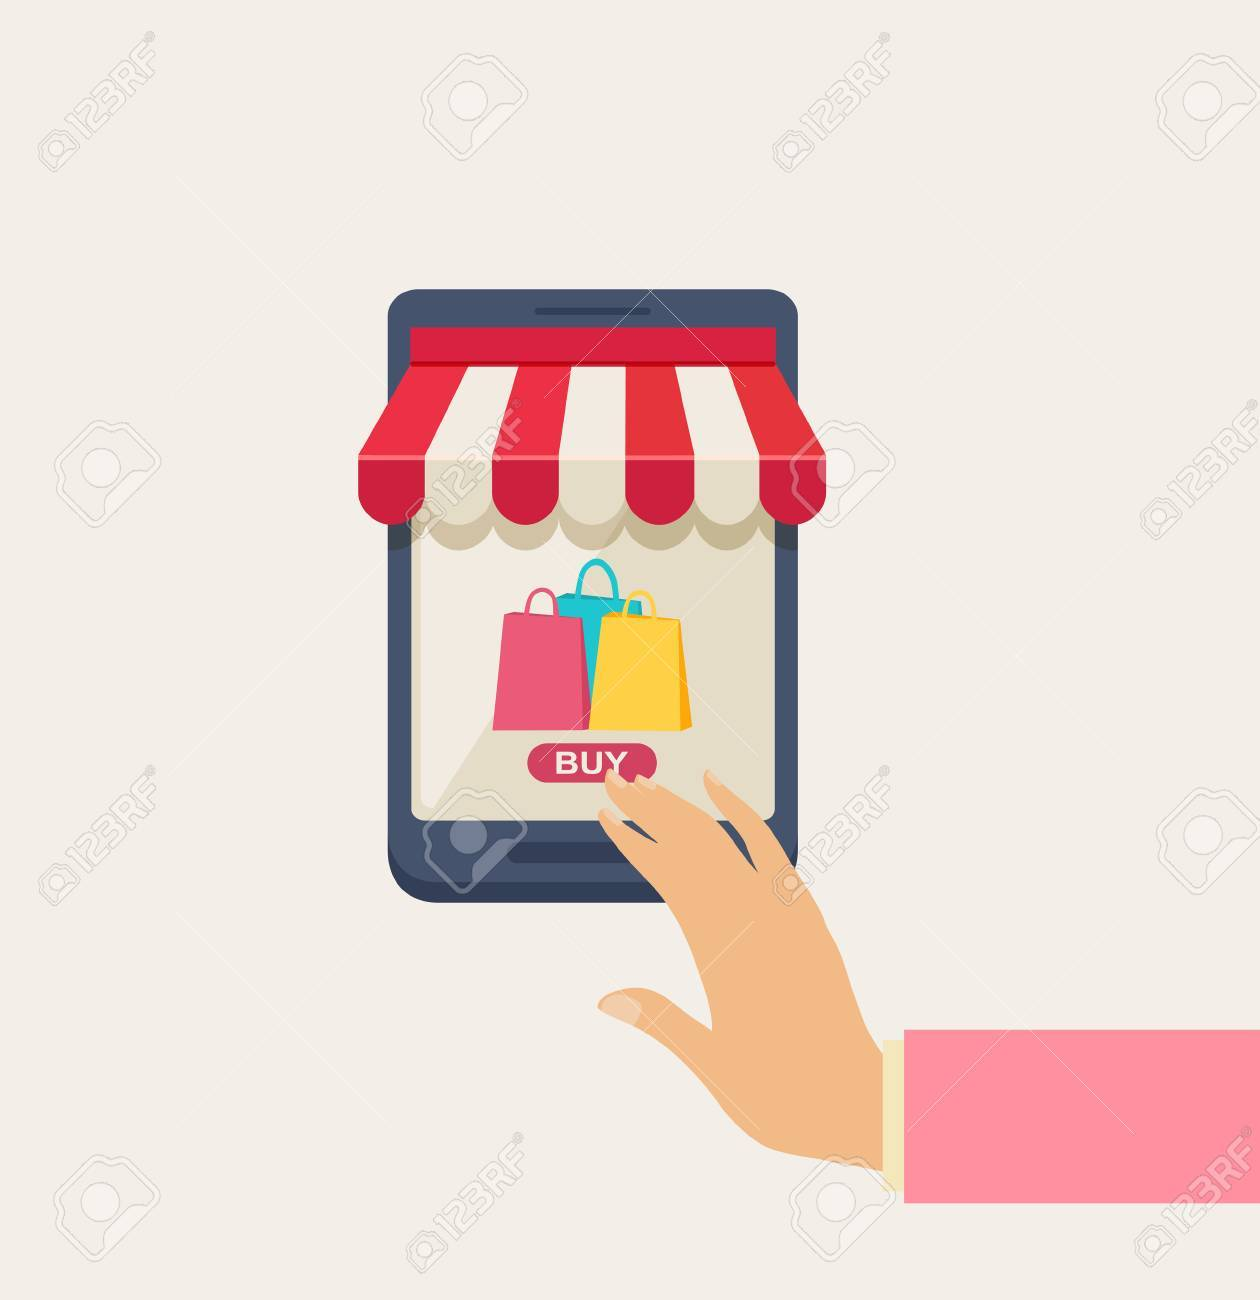 Cartooned Online Shopping Concept with Human Hand Touching the Screen of a Mobile Phone, Emphasizing of Buying Something, on a Very Light Brown Background. Stock Vector - 48104939